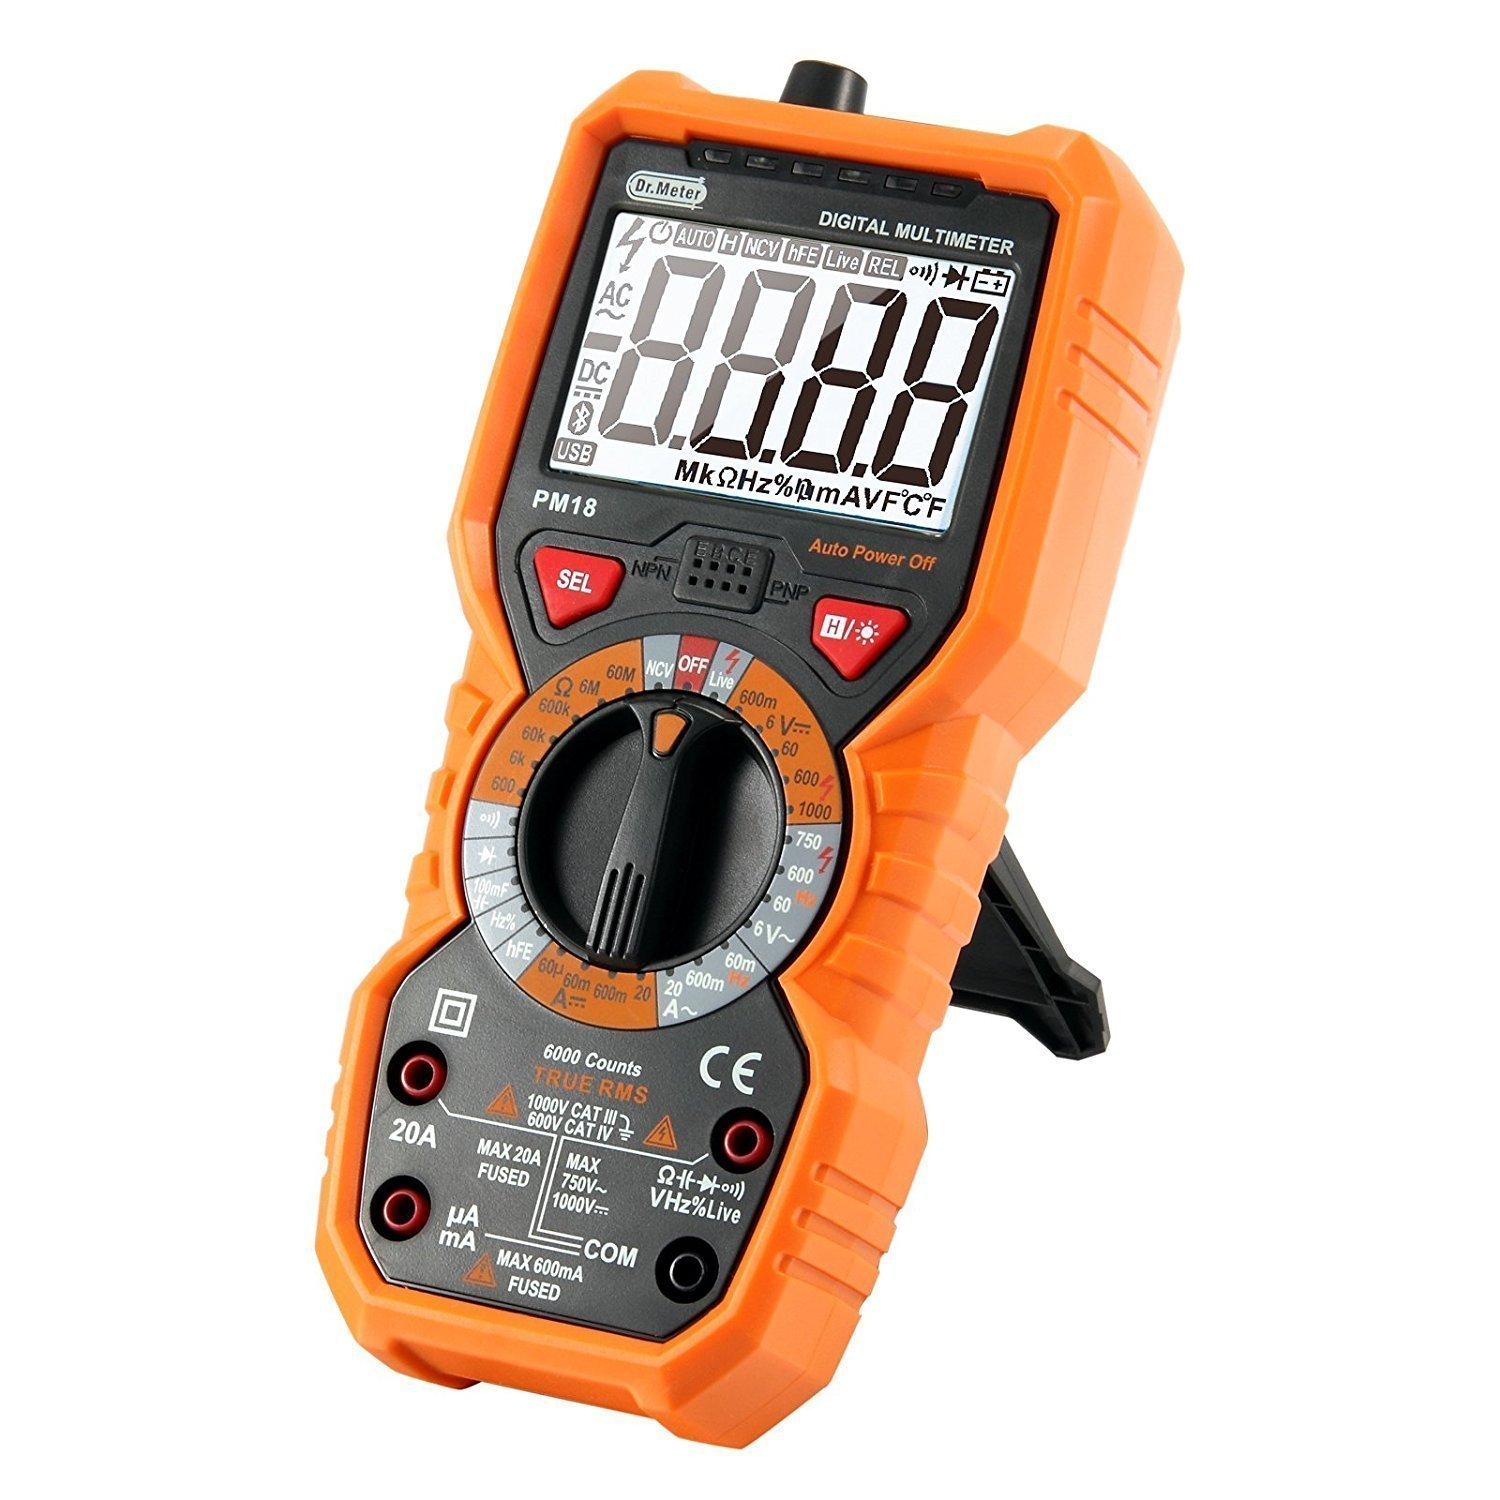 [Digital Multimeters] Dr.meter Digital Multimeter Trms 6000 Counts Tester Non-Contact Voltage Detection Multi Meter, PM18 by Dr.meter (Image #2)